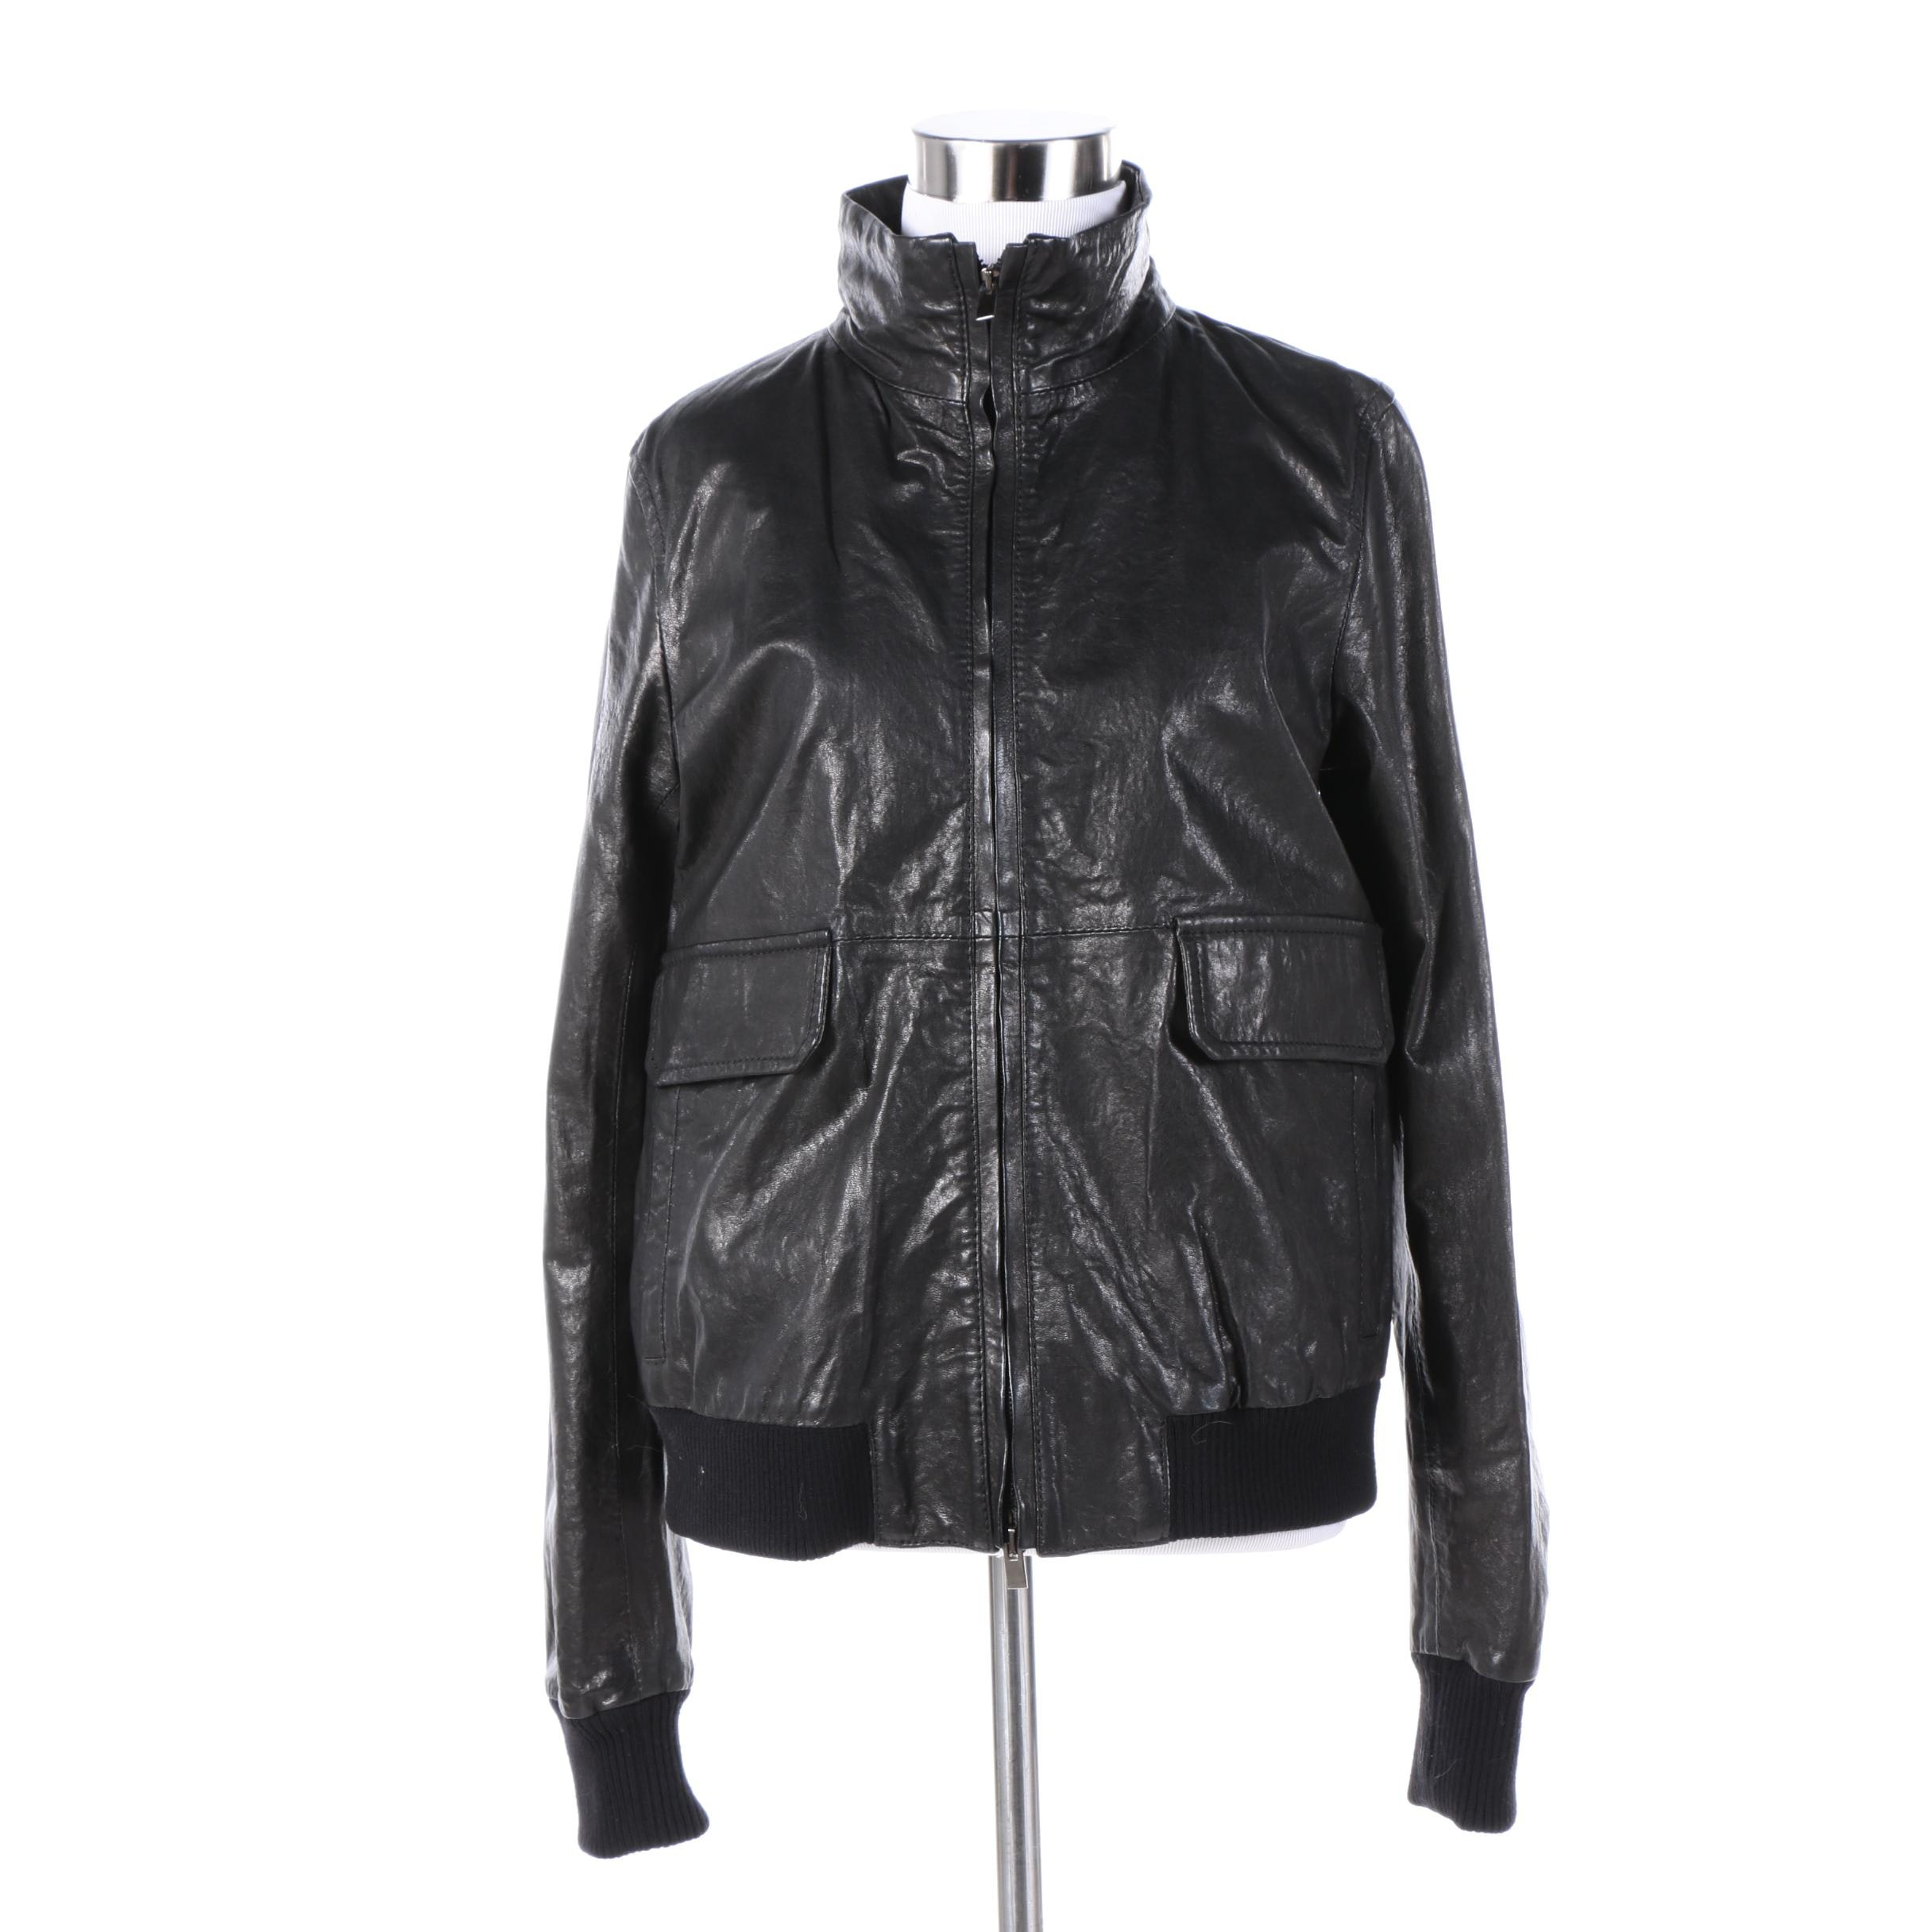 Women's Theory Black Leather Jacket